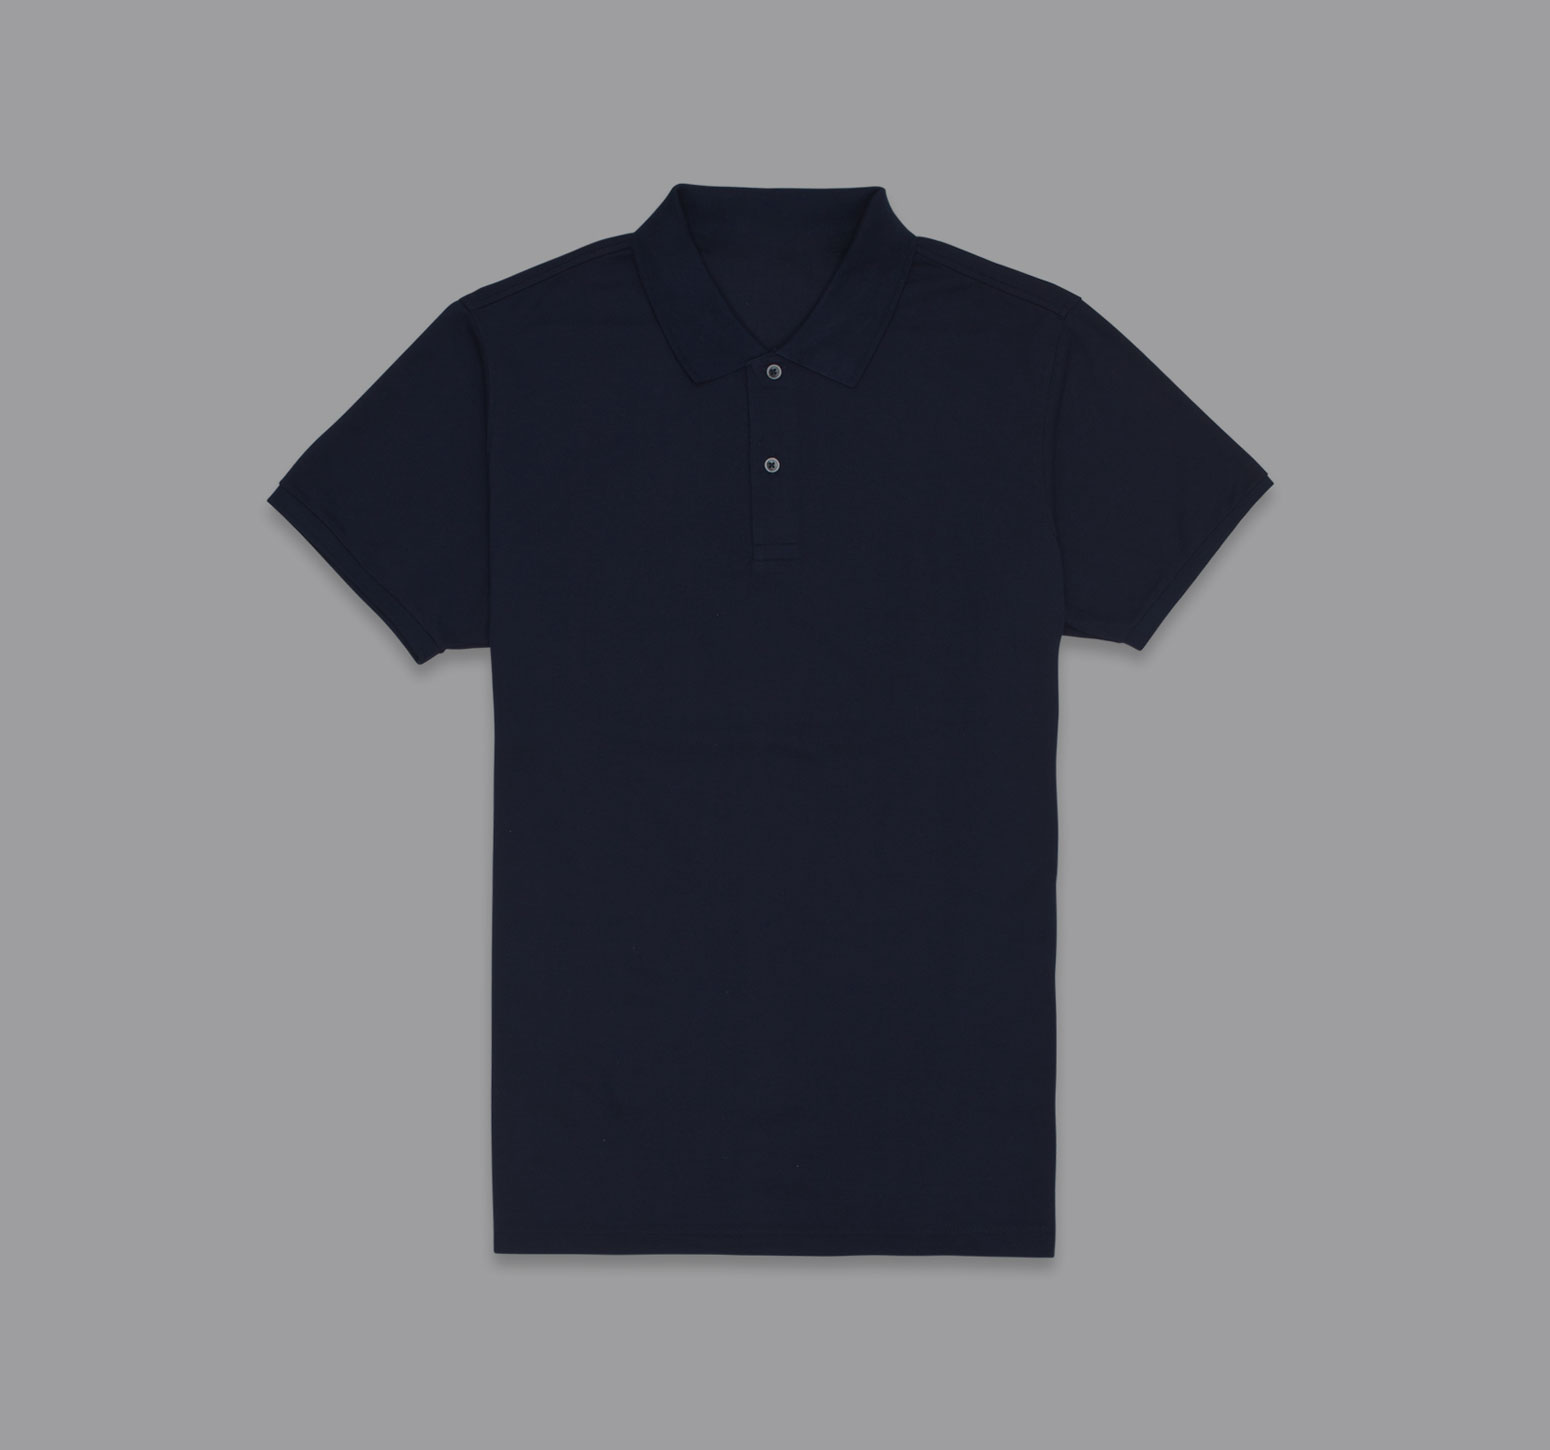 atelier_image_banner-shirts-40